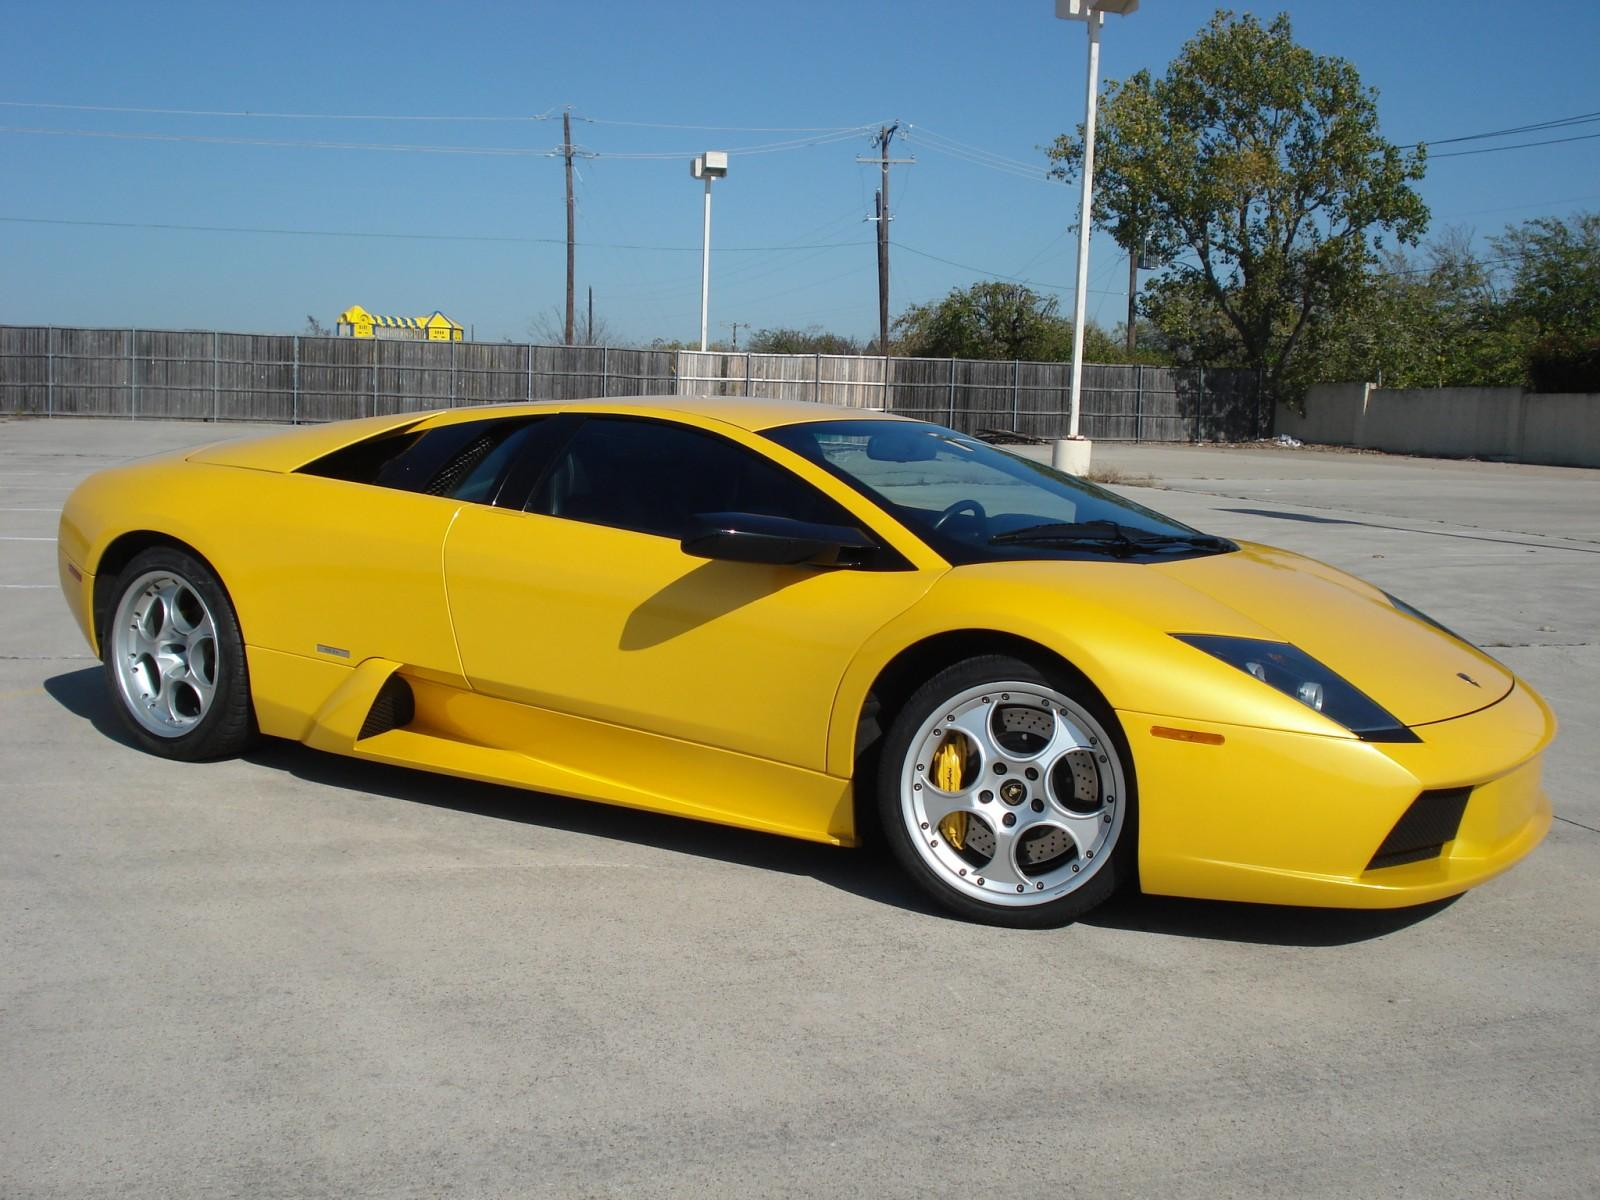 2004 Lamborghini Murcielago Information And Photos Zombiedrive